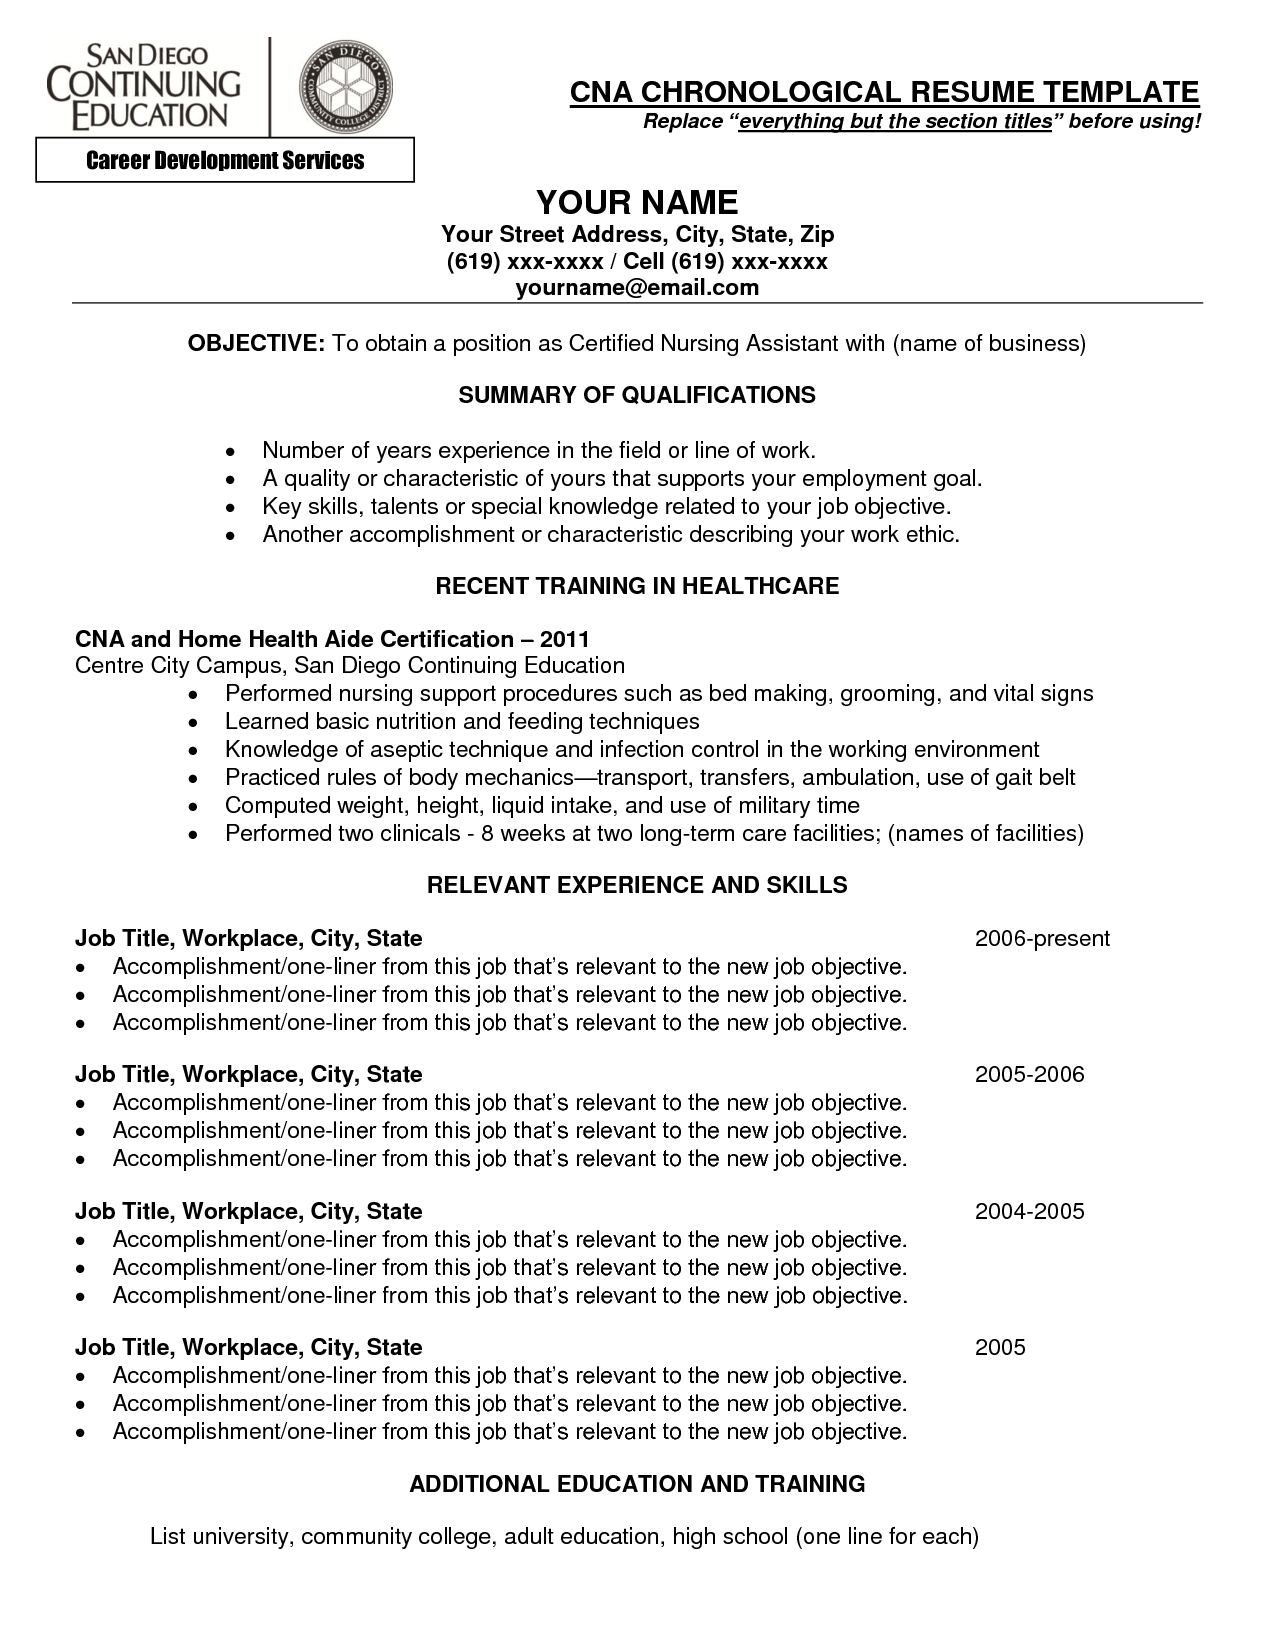 cna skills resume for com cna chronological resume template relevant experience and skills list of cna skills for resume